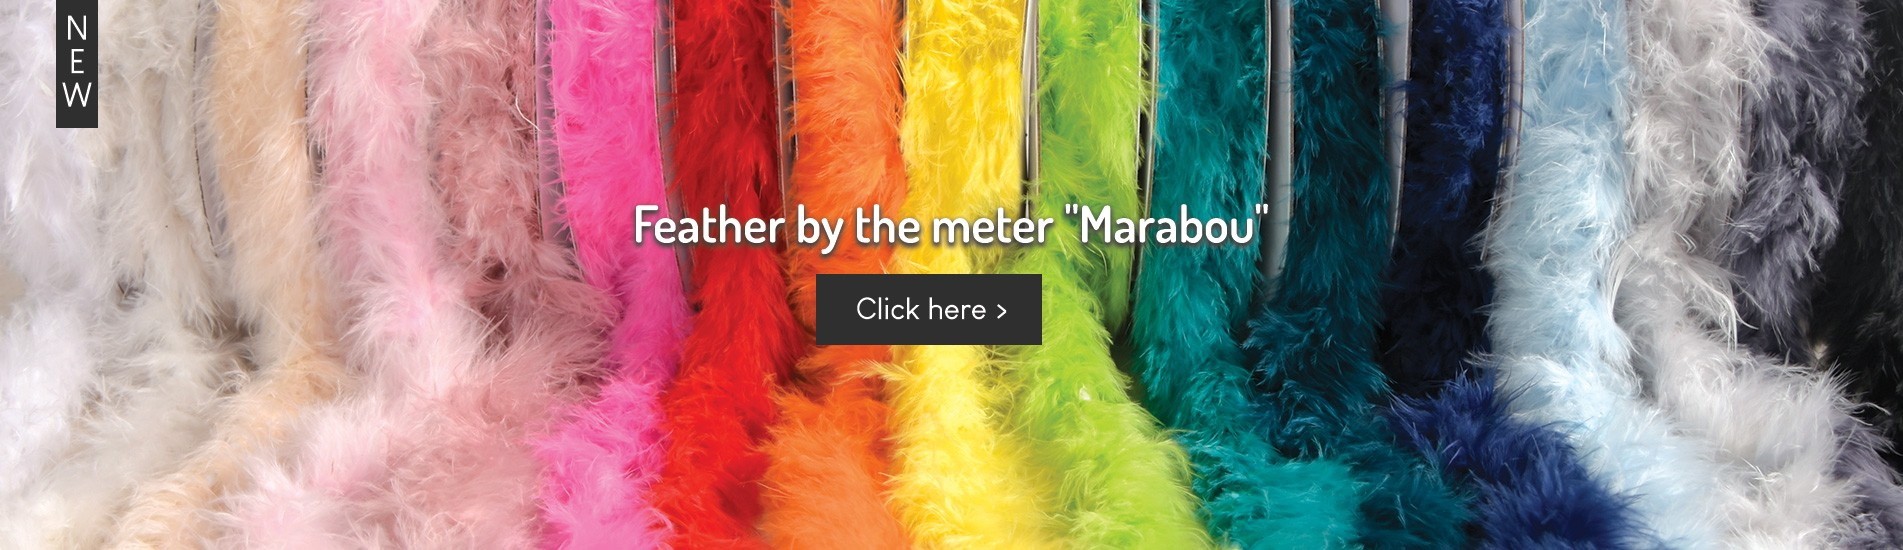 Marabout Feathers, By The Meter